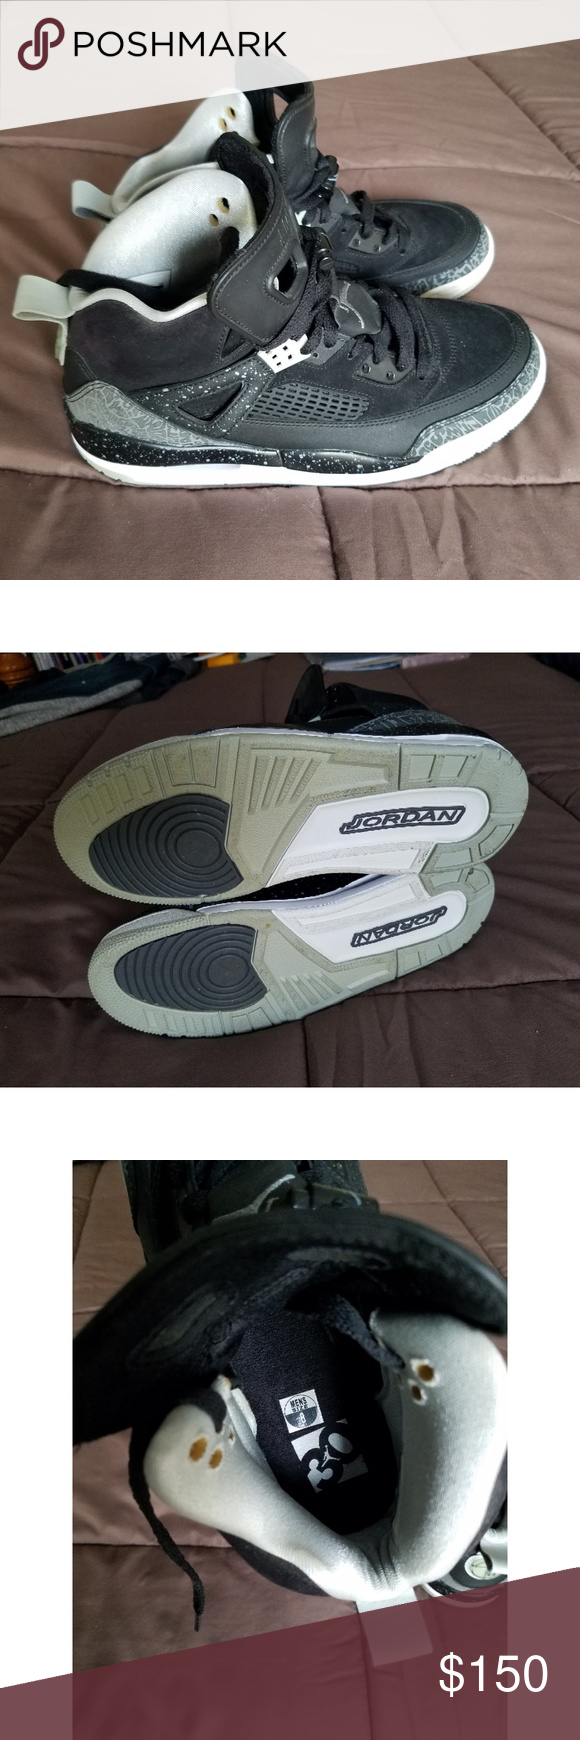 on sale 0ee2a cc929 Air Jordan Spike Lee Oreo Size 8 Nike Air Jordan Spizike Black Cool Grey  Mist White 315371-003 Size 8 In good condition Comes from a smoke and pet  free home ...